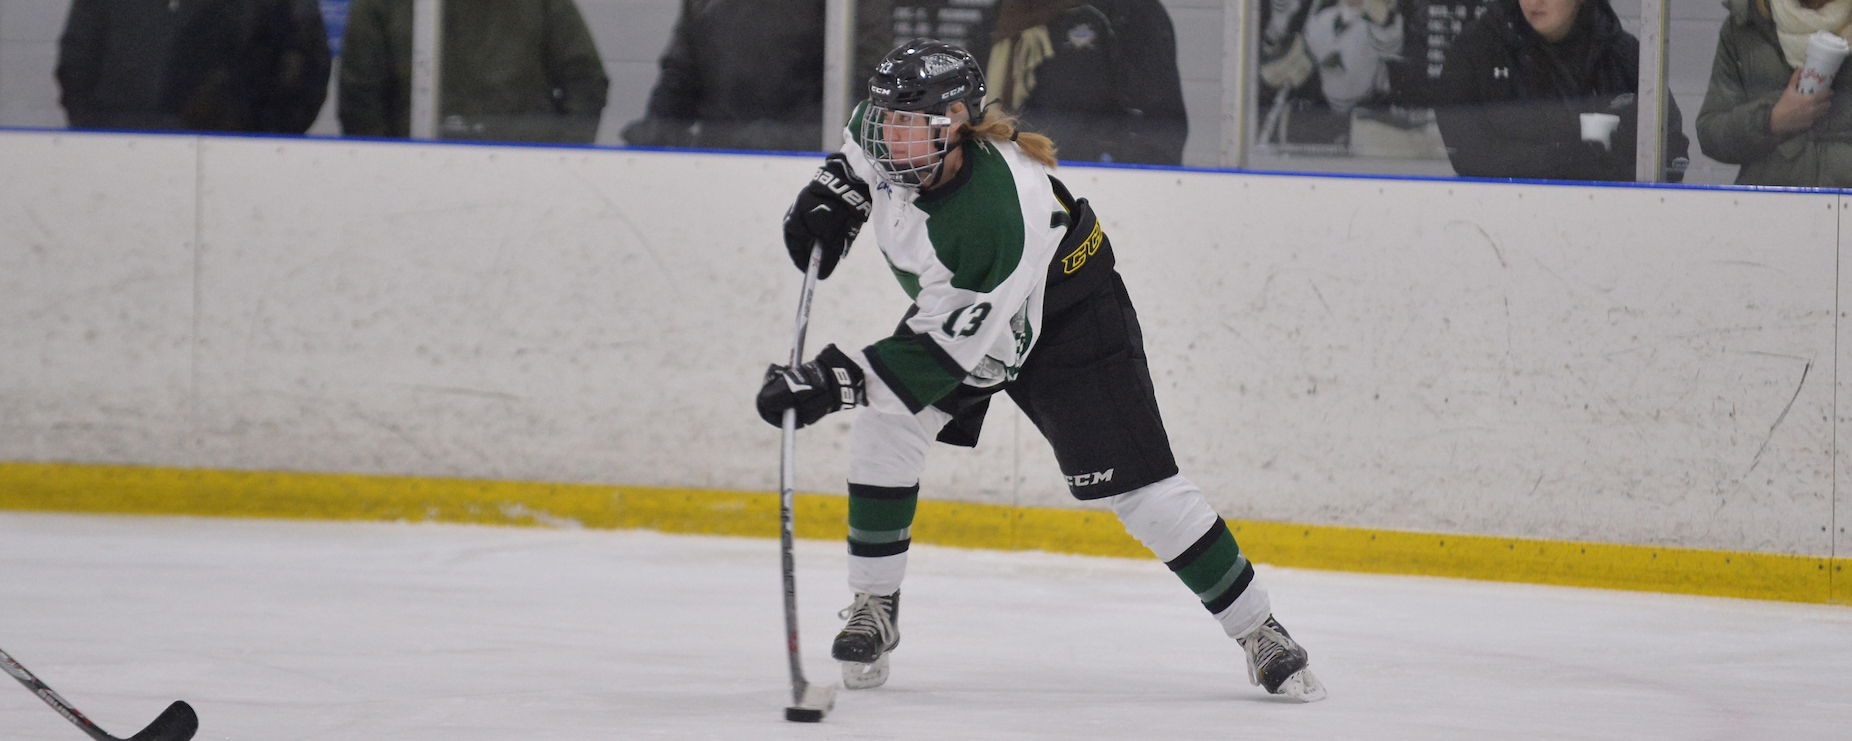 Pozuc Scores Twice in Mustangs 4-1 UCHC Win Over Chatham